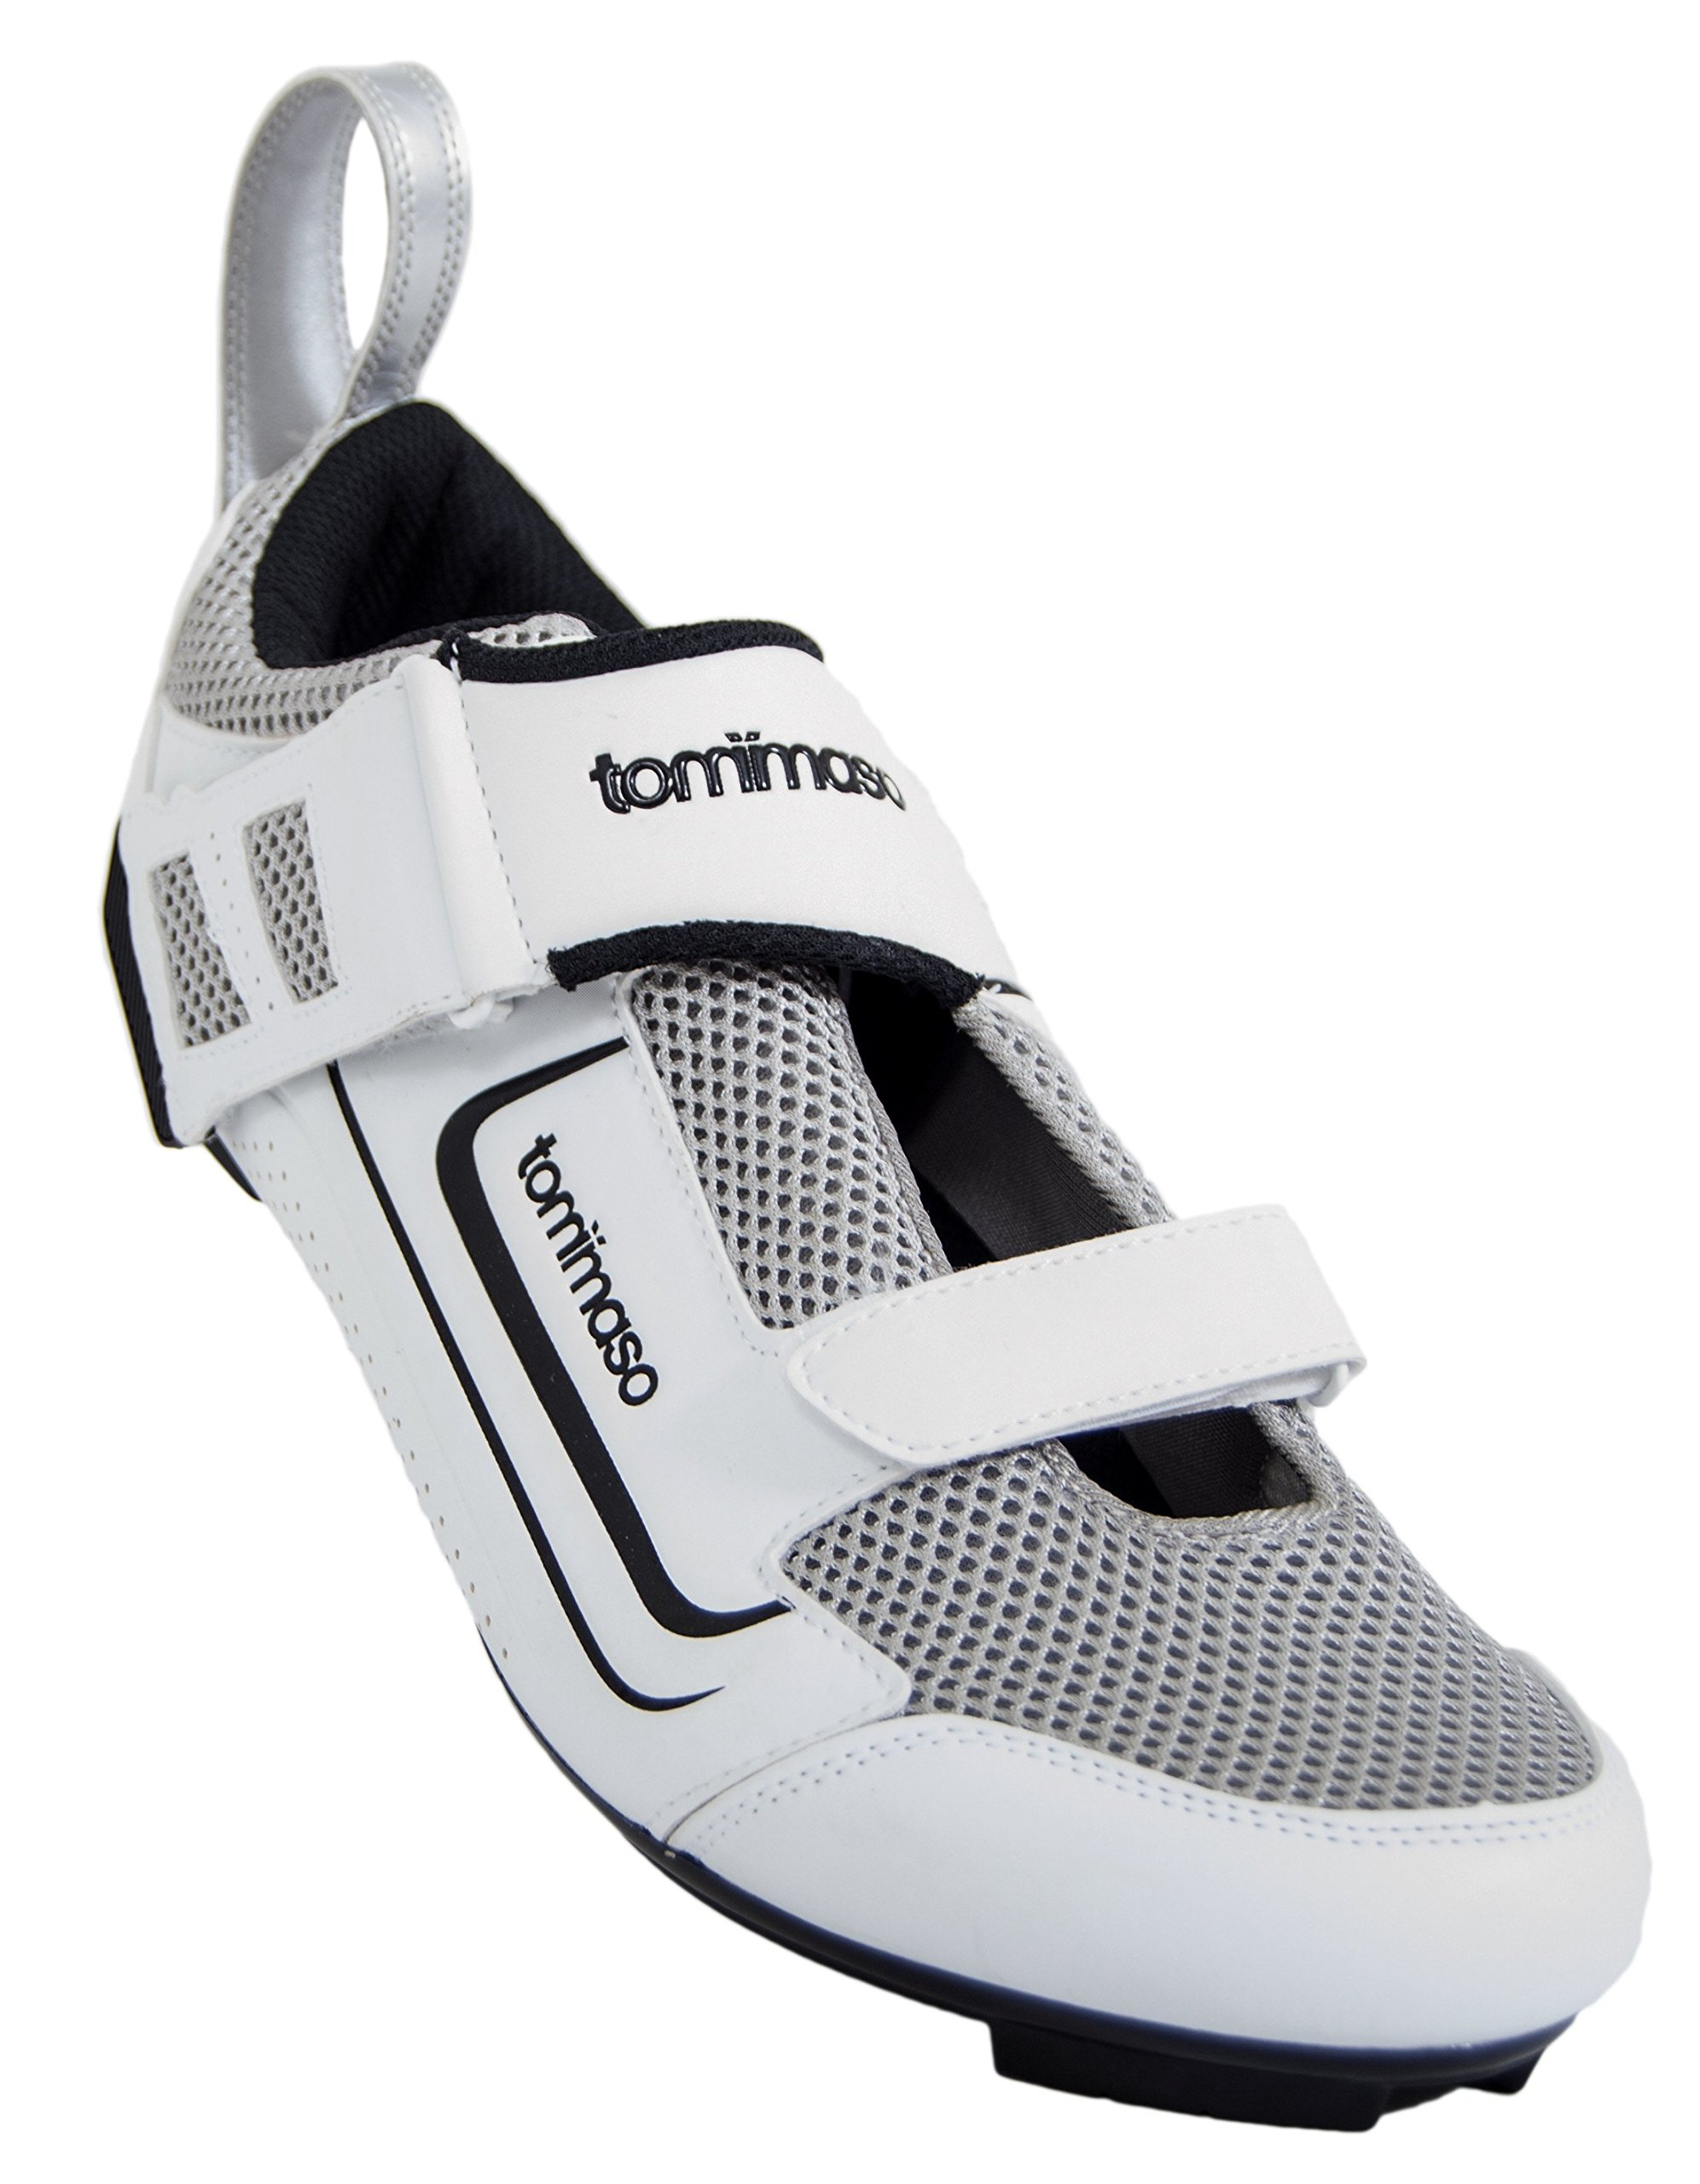 tommaso Veloce 100 Triathlon Road Cycling Shoe - White - 41